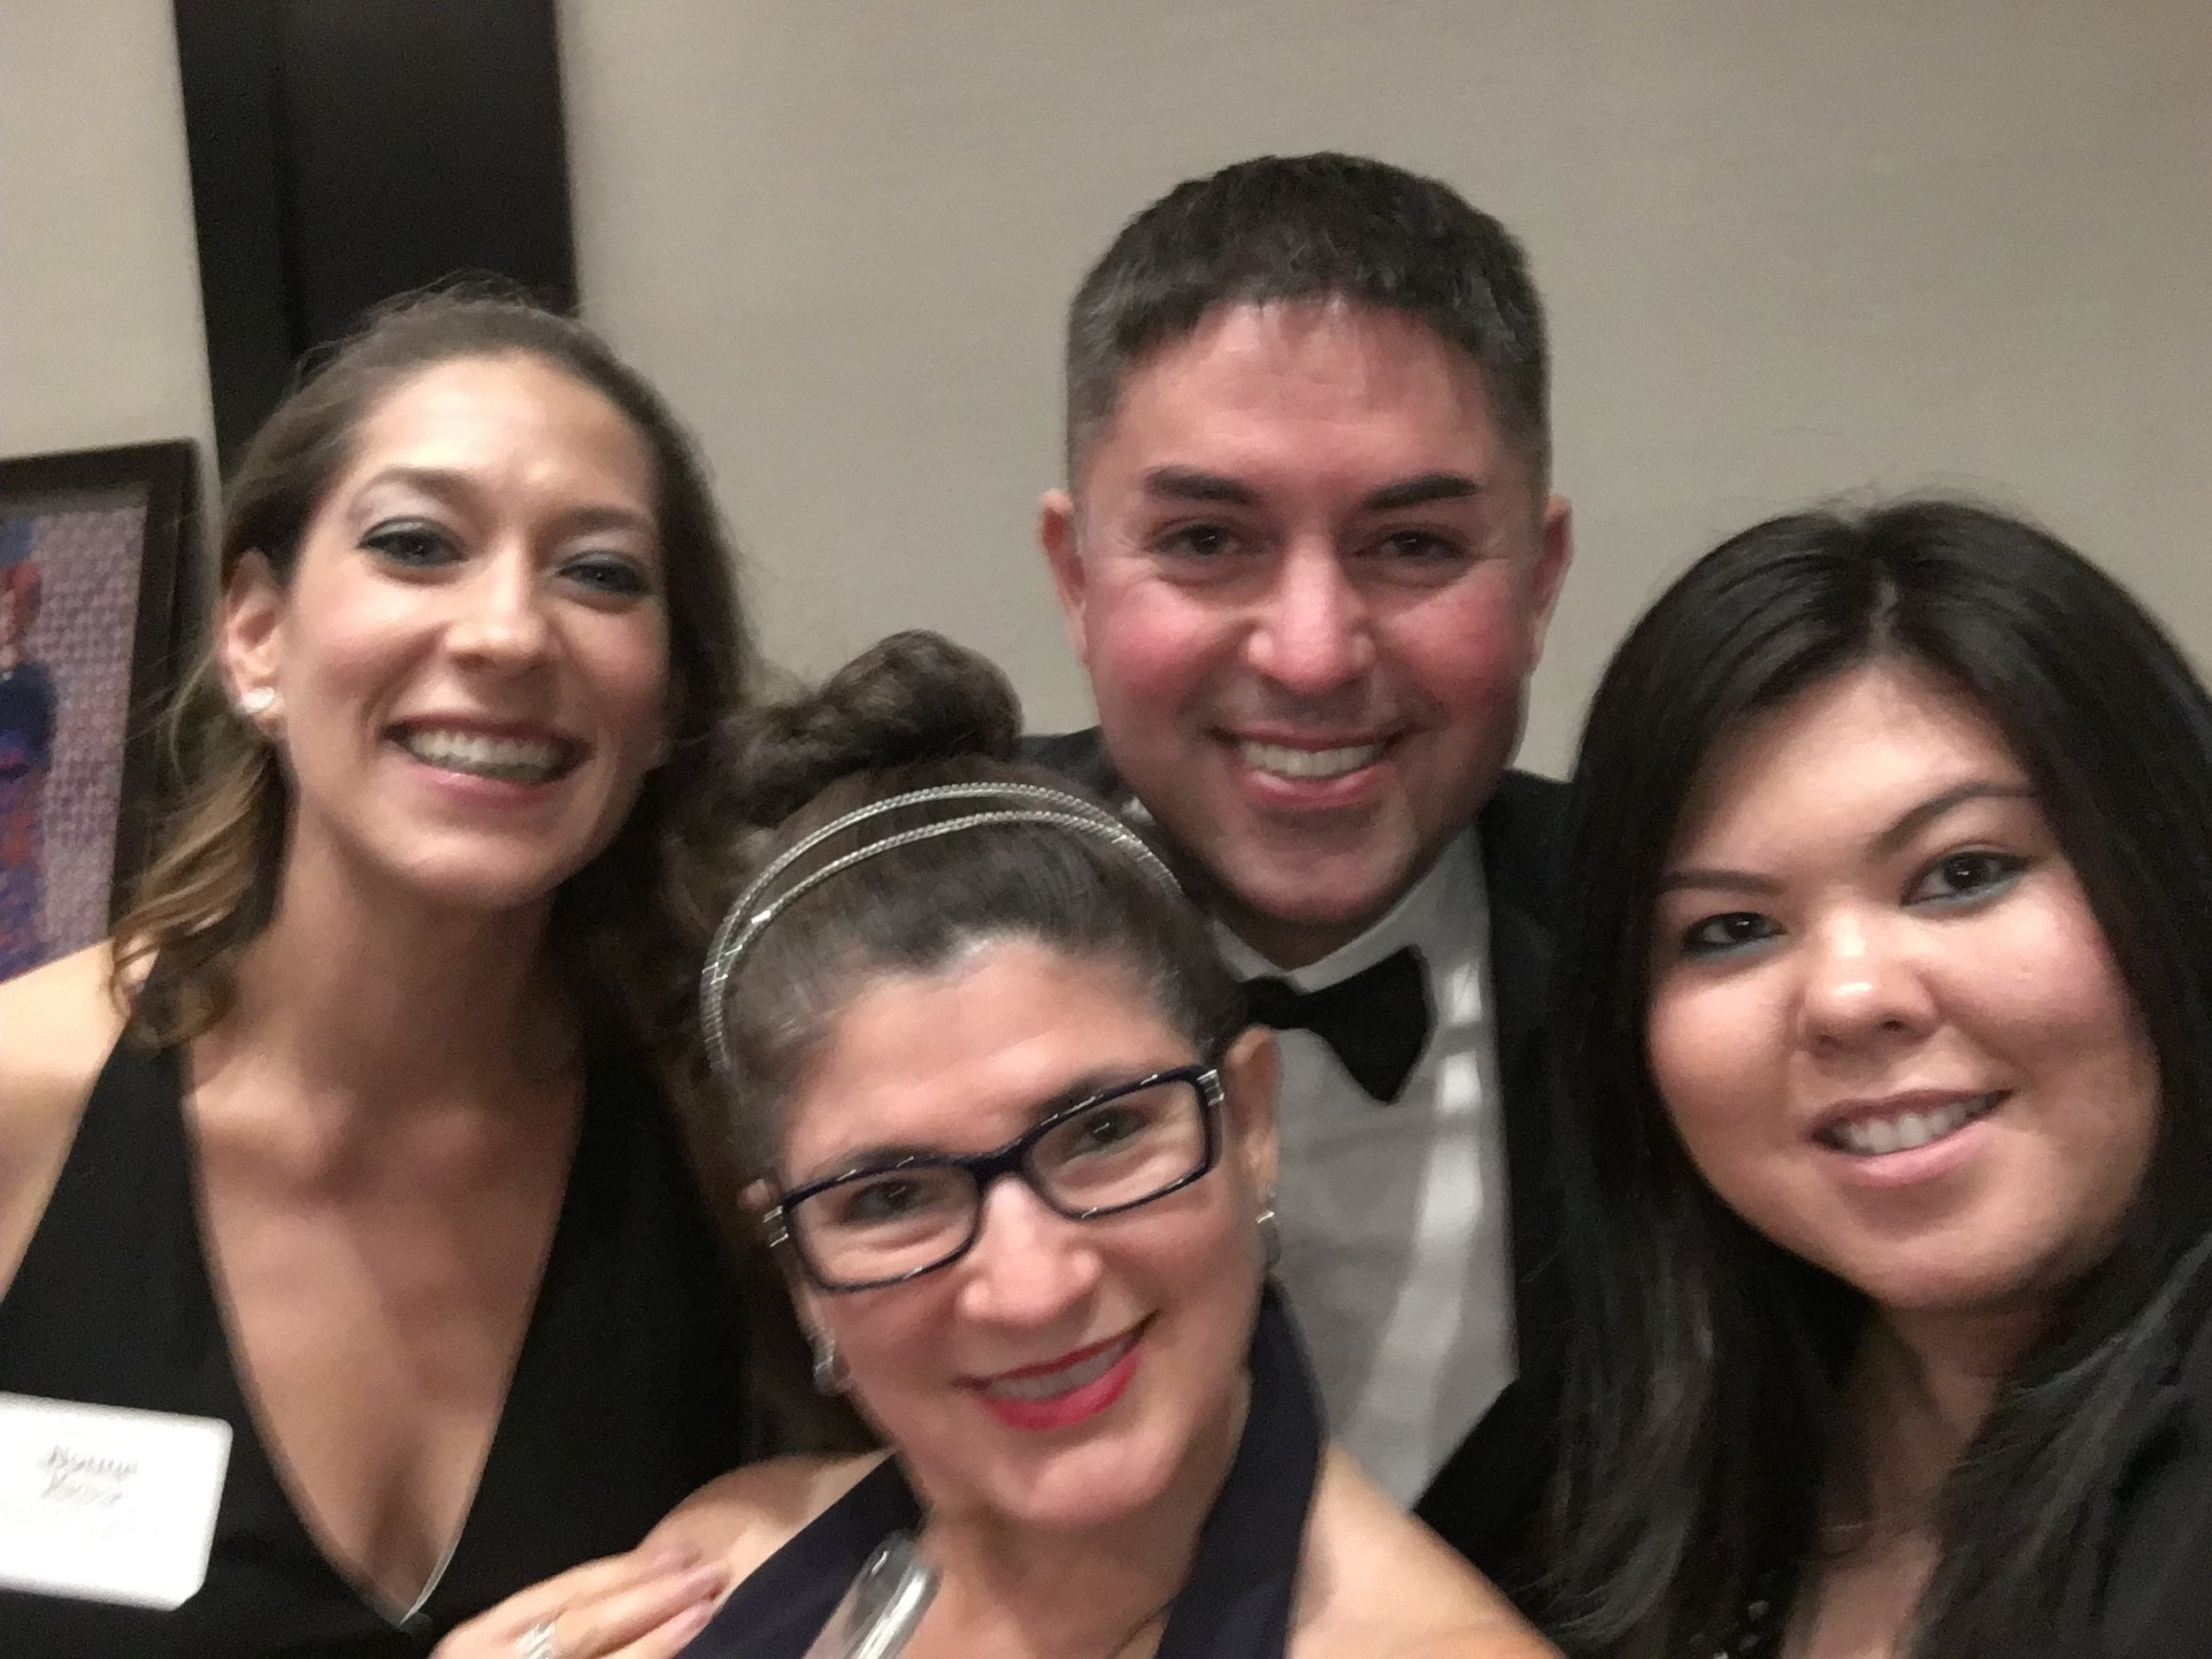 El Centro de La Raza Gala    EDI Class of 2016   Left to Right: Norma Mariscal, Carmen Marttila (2016 Program Chair) Jeremy Ochoa, Brittany Ryerson (EDI Events Manager)